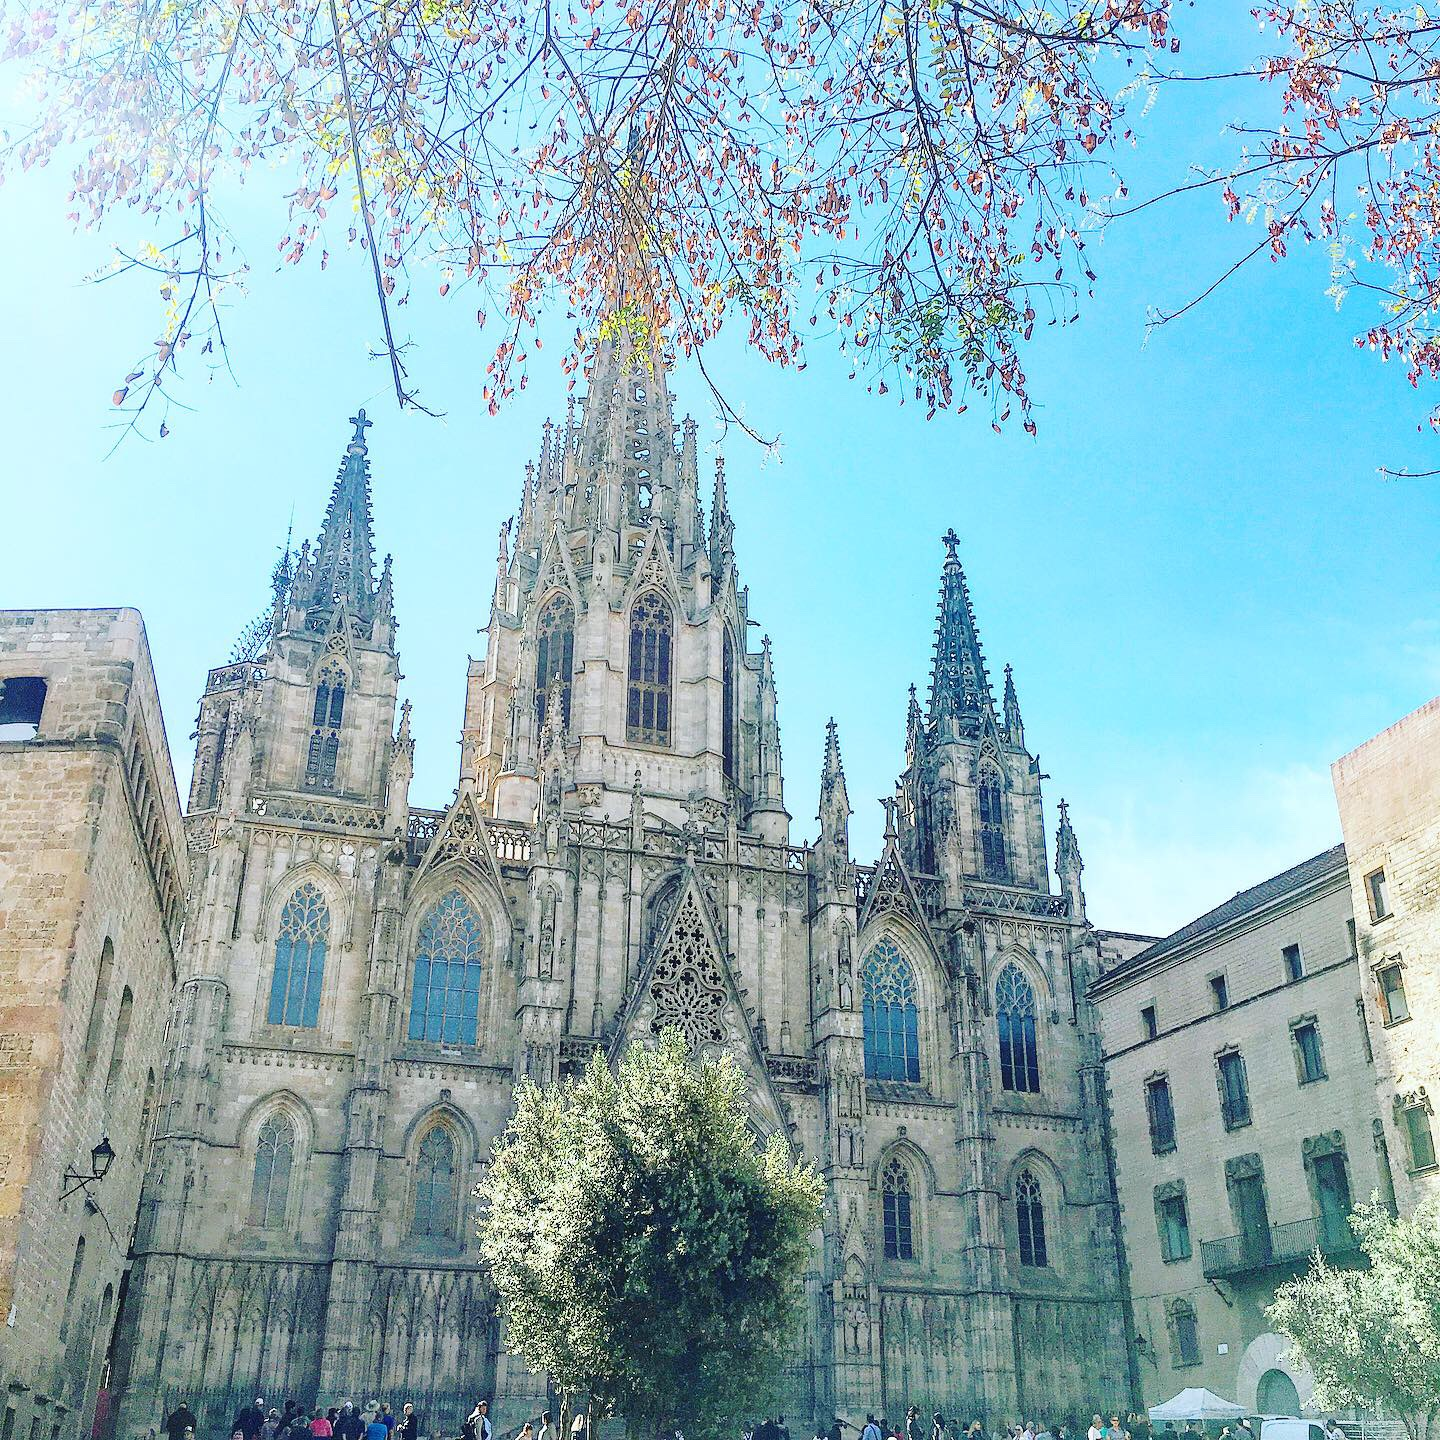 Barcelona Spain - Lucy Williams Global